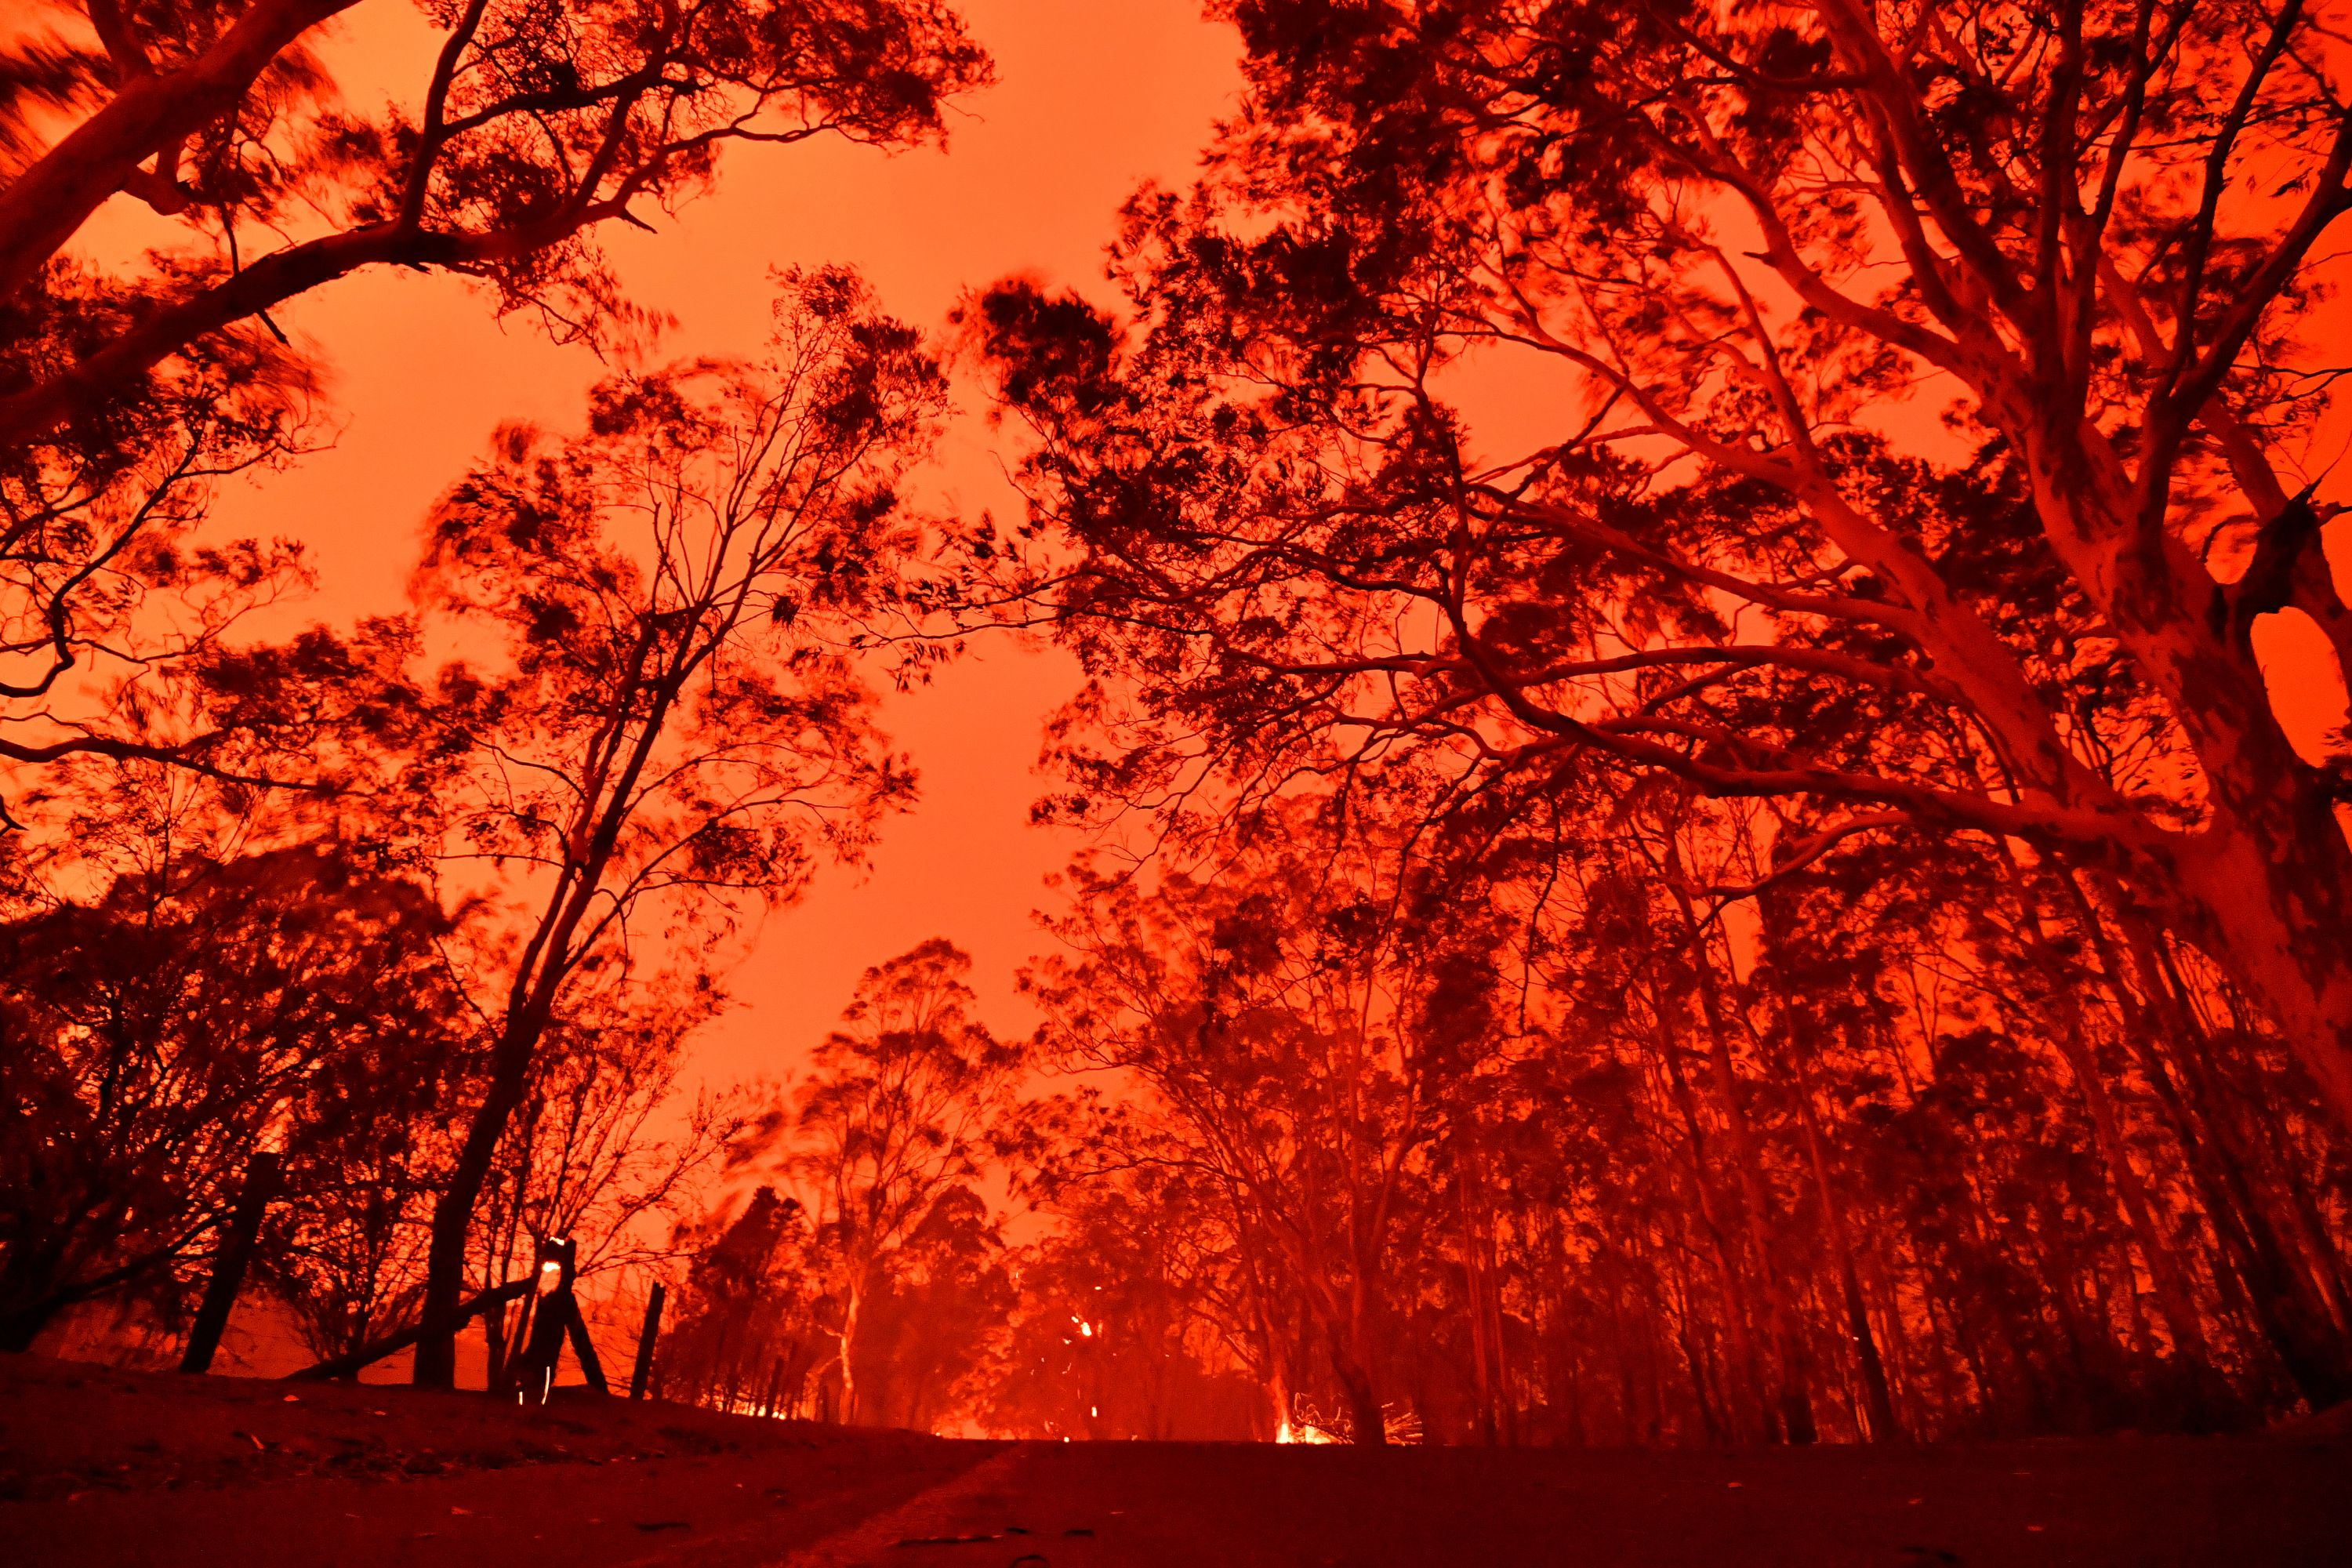 The afternoon sky glows red from bushfires in the area around the town of Nowra in the Australian state of New South Wales on December 31, 2019. - Thousands of holidaymakers and locals were forced to flee to beaches in fire-ravaged southeast Australia on December 31, as blazes ripped through popular tourist areas leaving no escape by land. (Photo by SAEED KHAN/AFP via Getty Images)